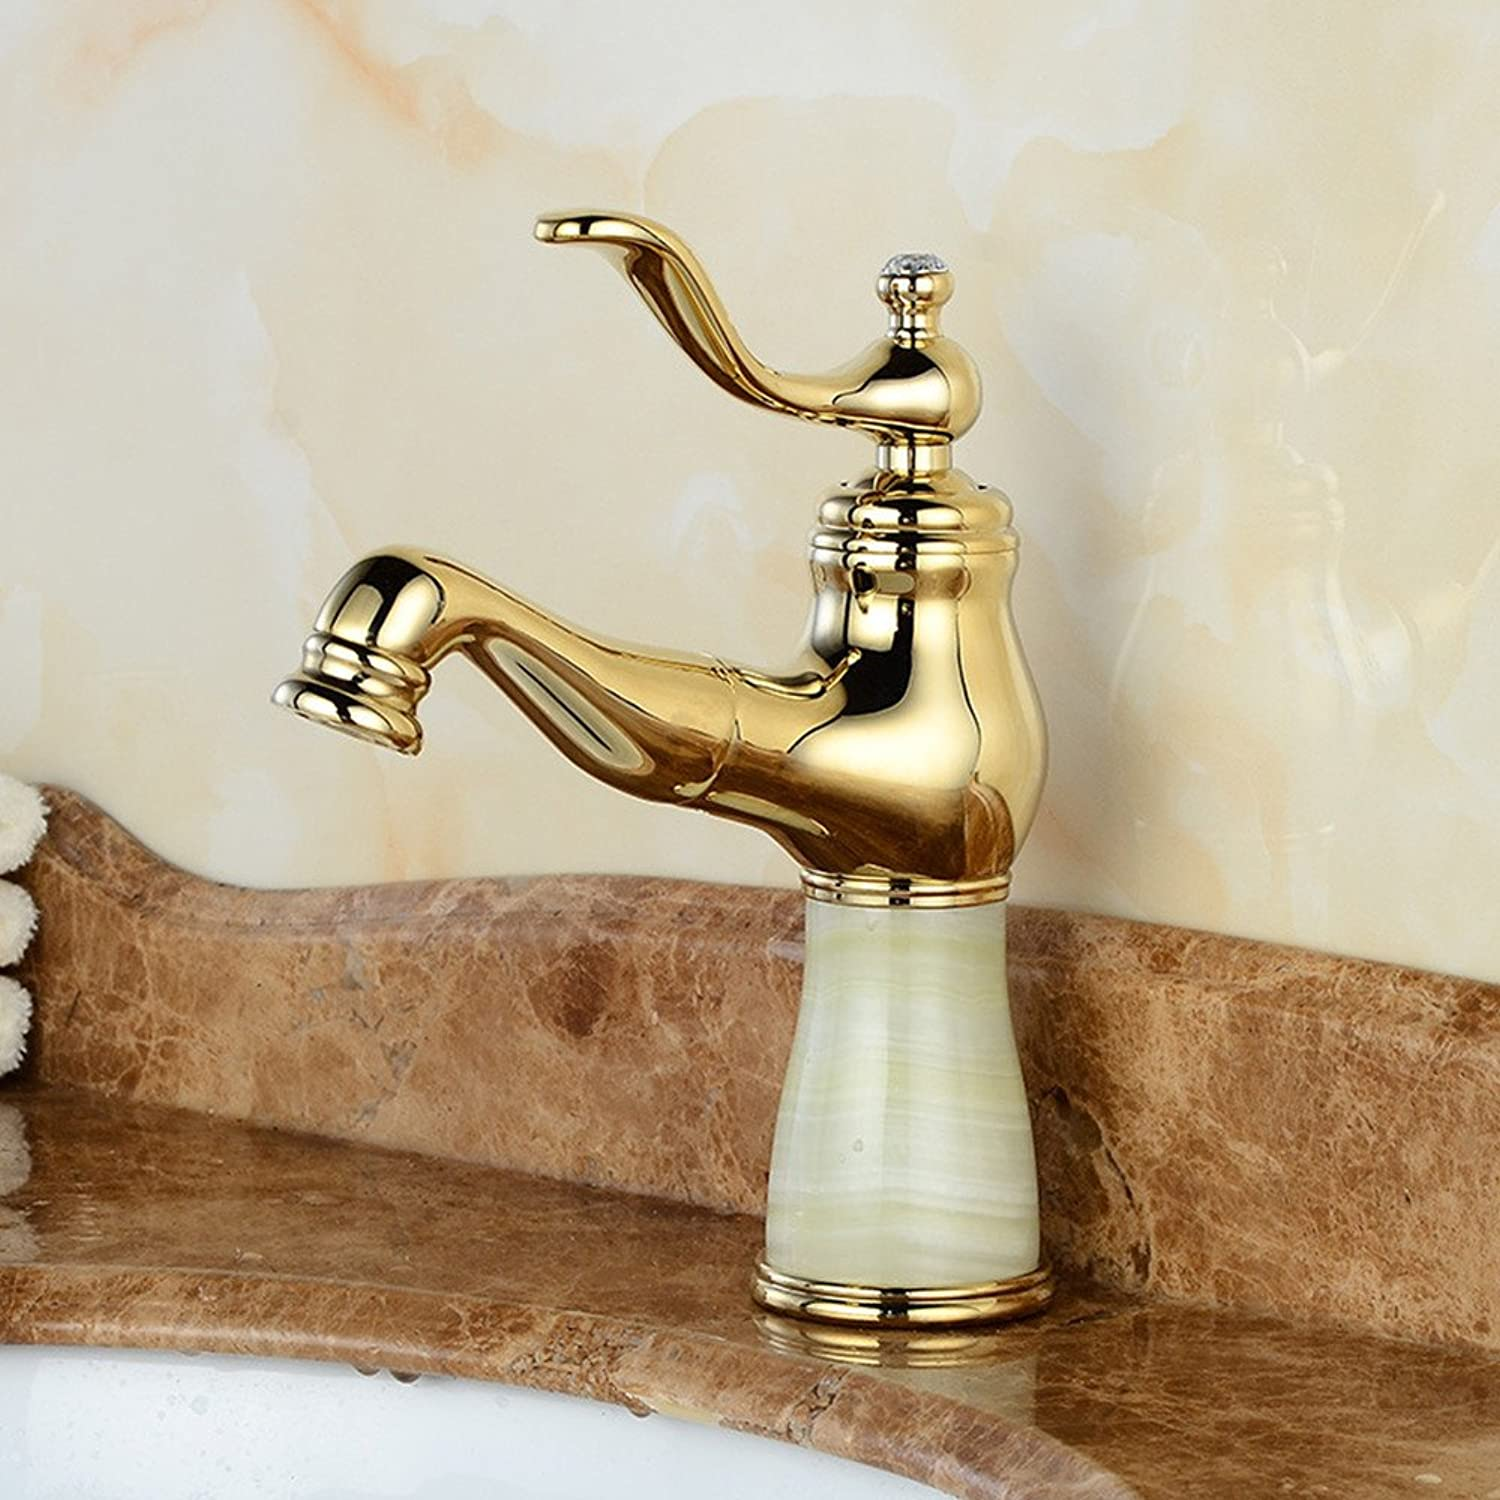 Hlluya Professional Sink Mixer Tap Kitchen Faucet All Copper Single-Mixer Taps